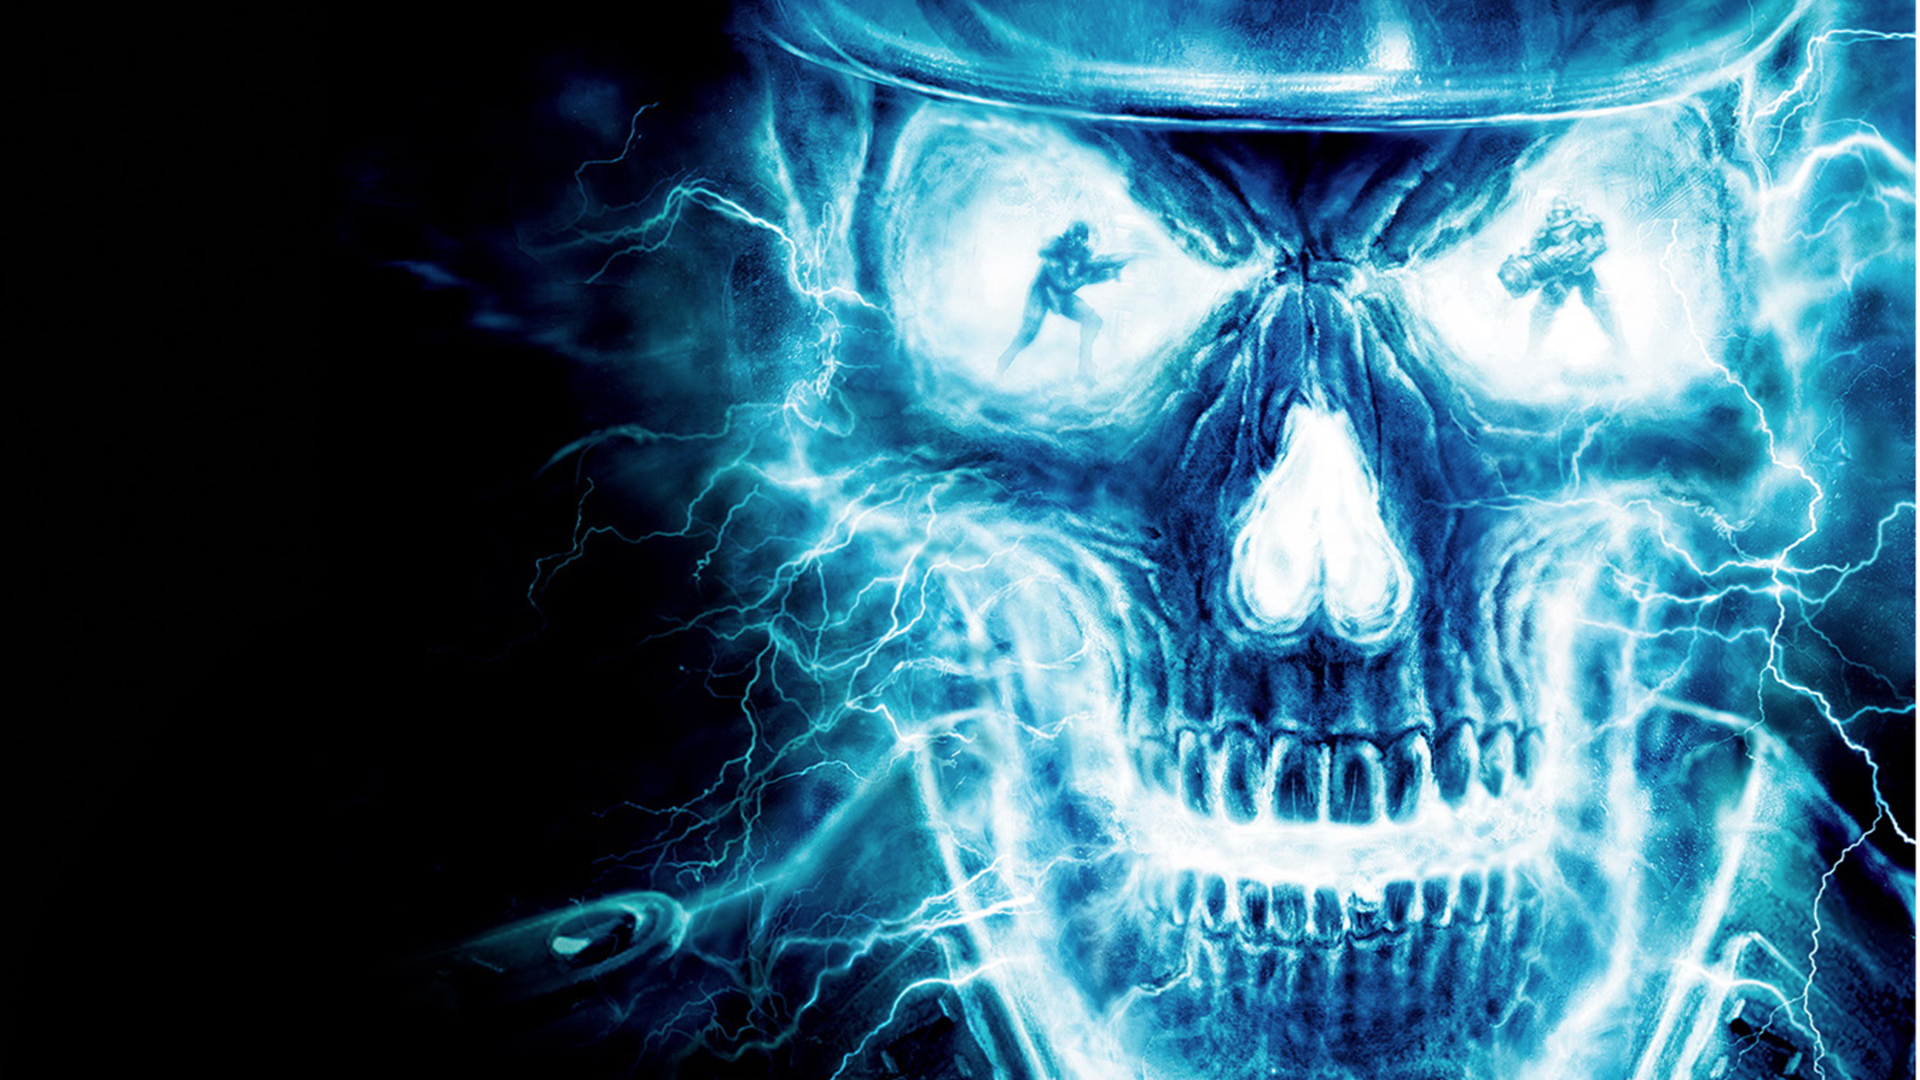 Blue-Flaming-Skull-Nexus-1920-x-1080-Need-iPhone-S-Plus-Background-for-IPhoneSP-wallpaper-wp3803308